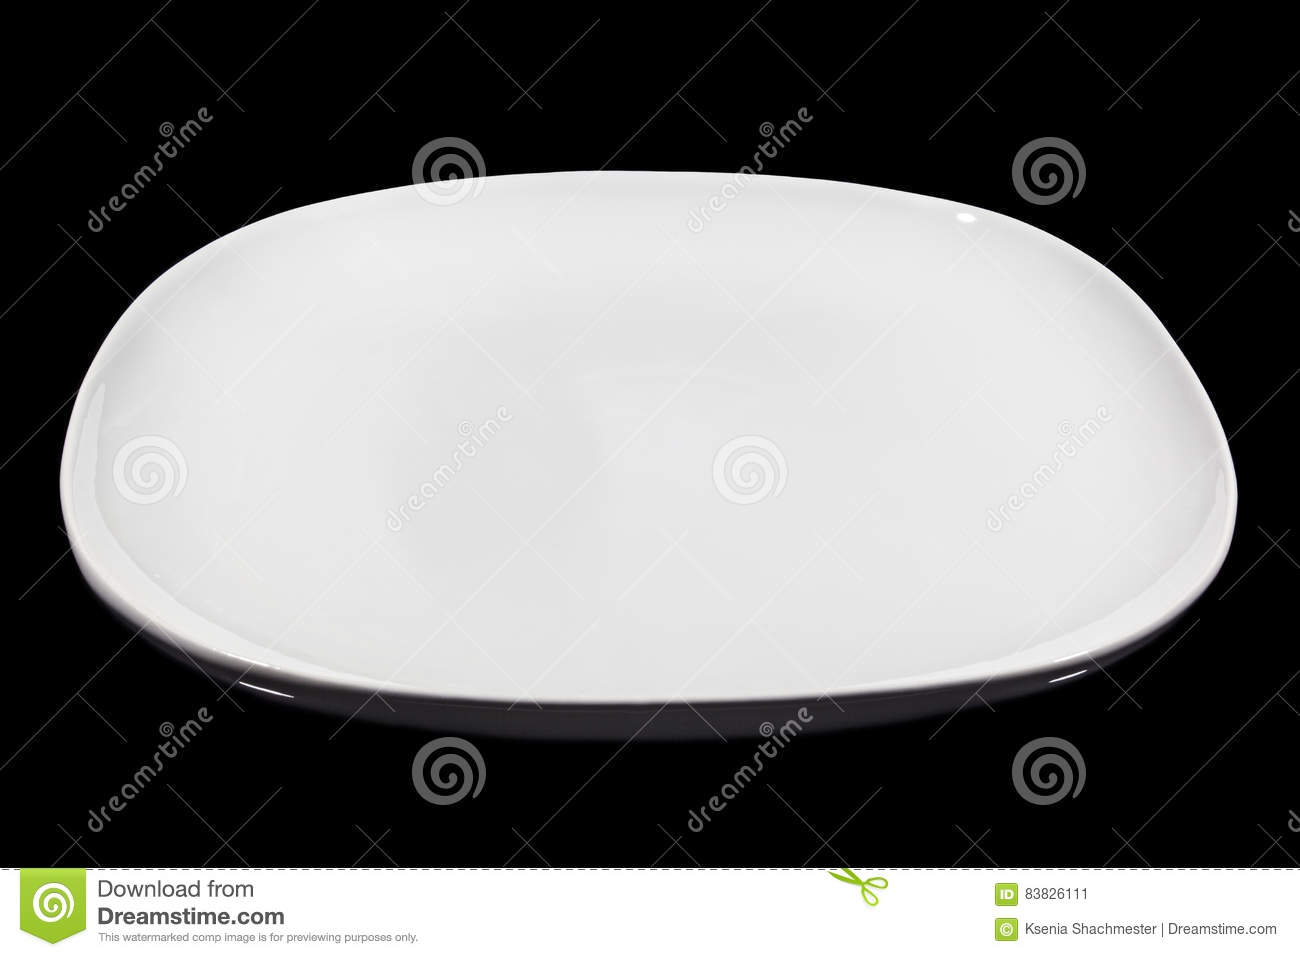 Flat white square plate on black background from side  sc 1 st  Dreamstime.com & Flat White Square Plate On Black Background From Side Stock Image ...